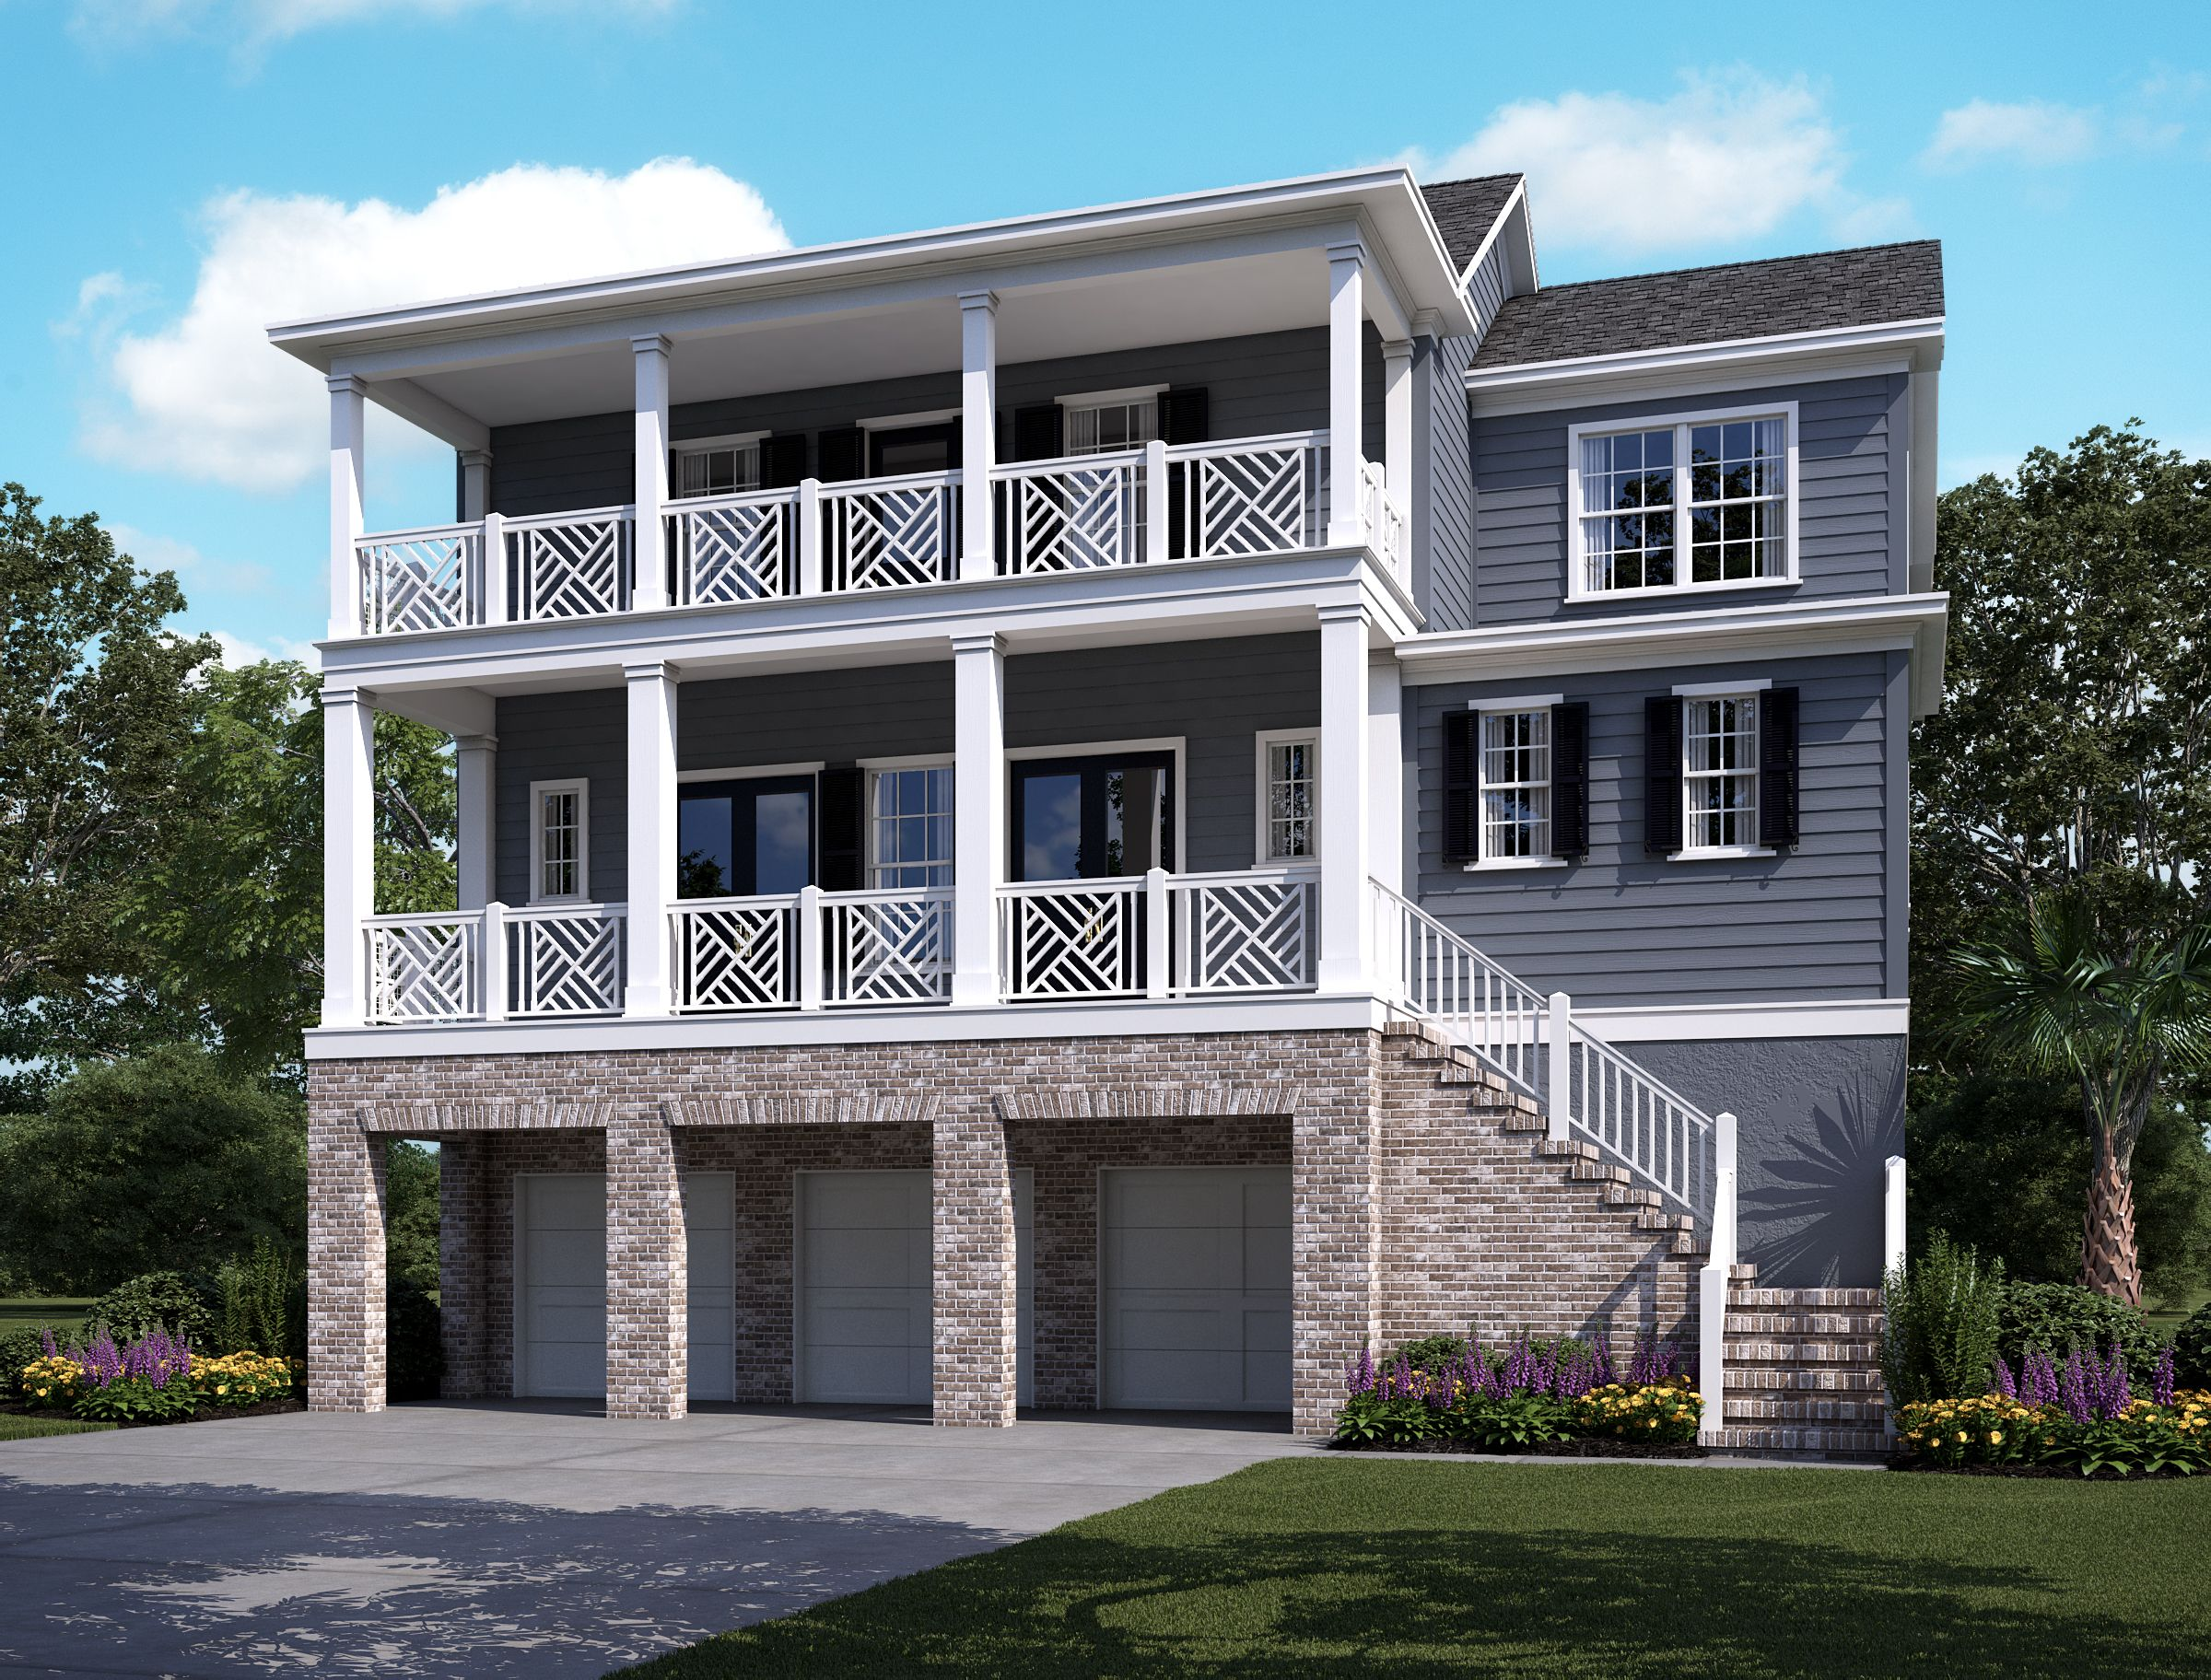 Single Family for Sale at Stratton By The Sound - Copahee 1400 Stratton Place Mount Pleasant, South Carolina 29466 United States